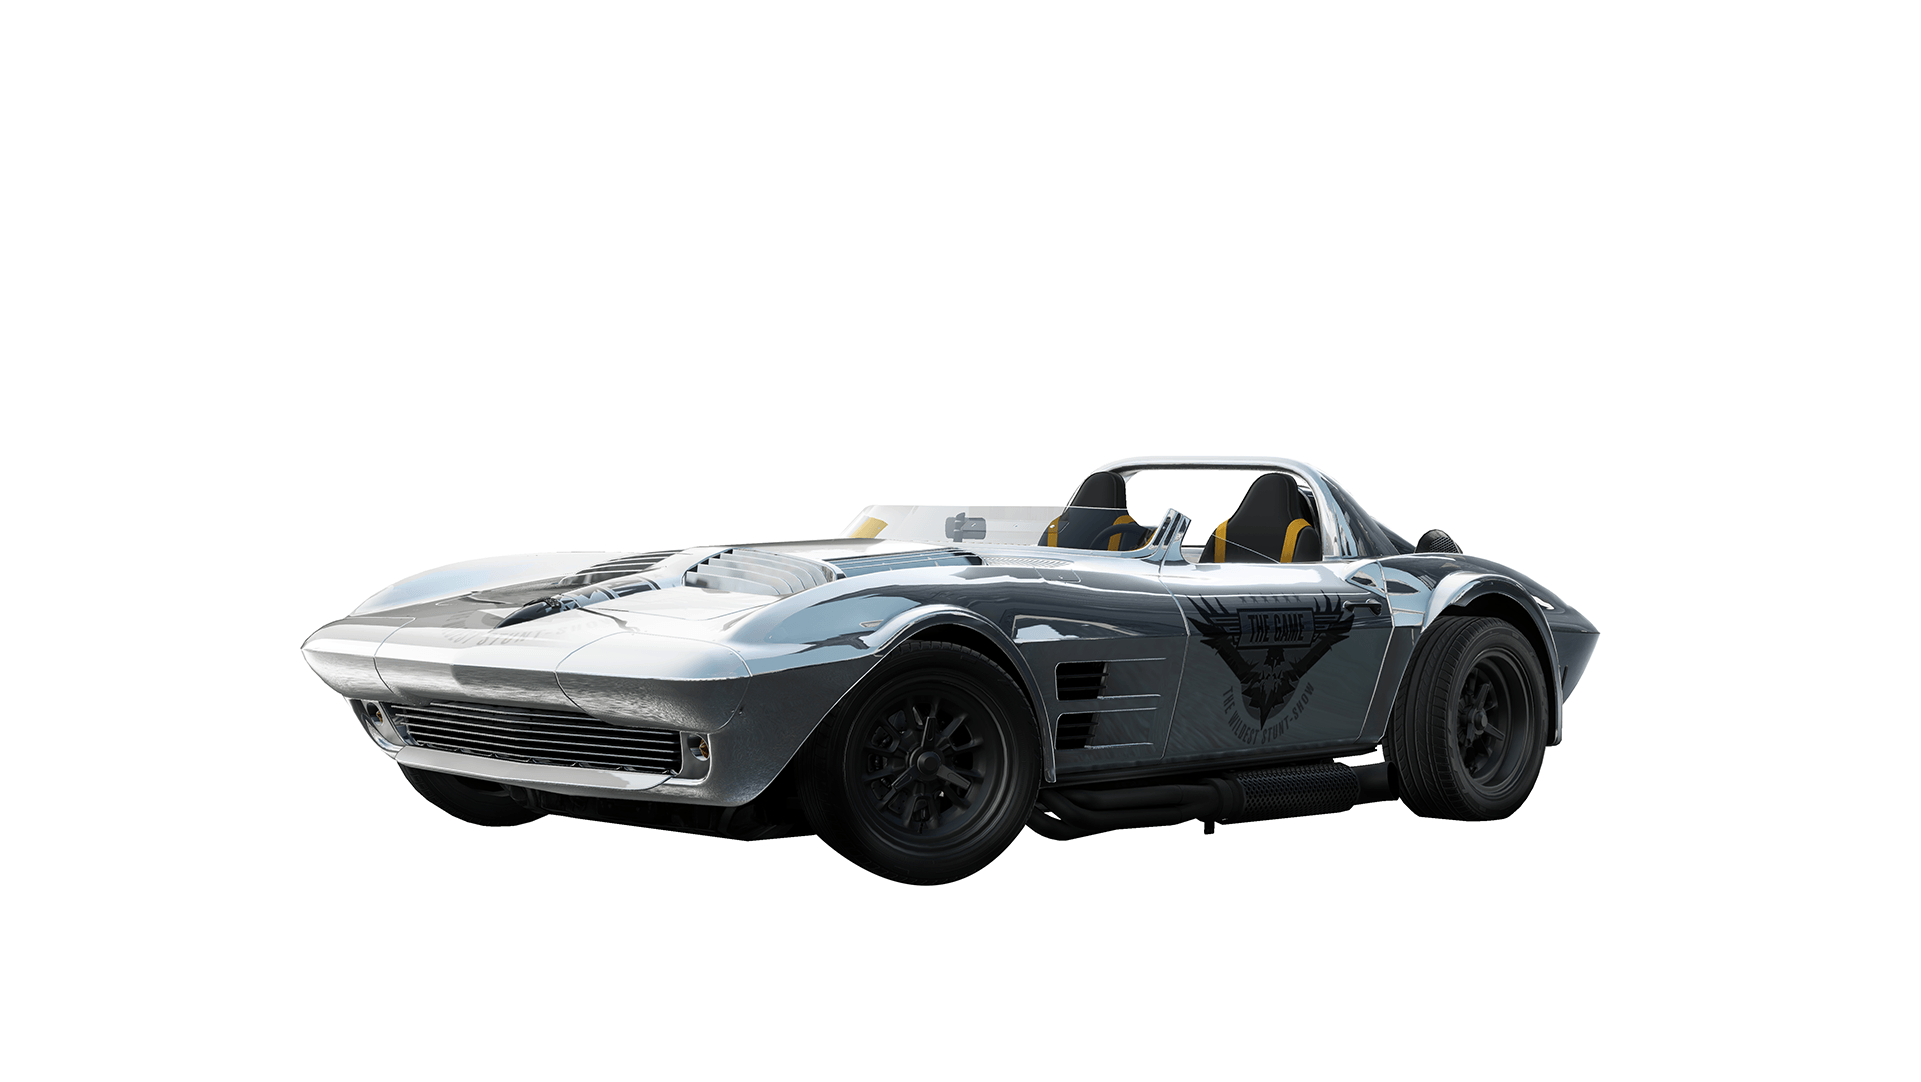 TC2_S2E2_TheGame_Renders_CHEVROLET_GRAND_SPORT_SPECIAL_EDITION.png